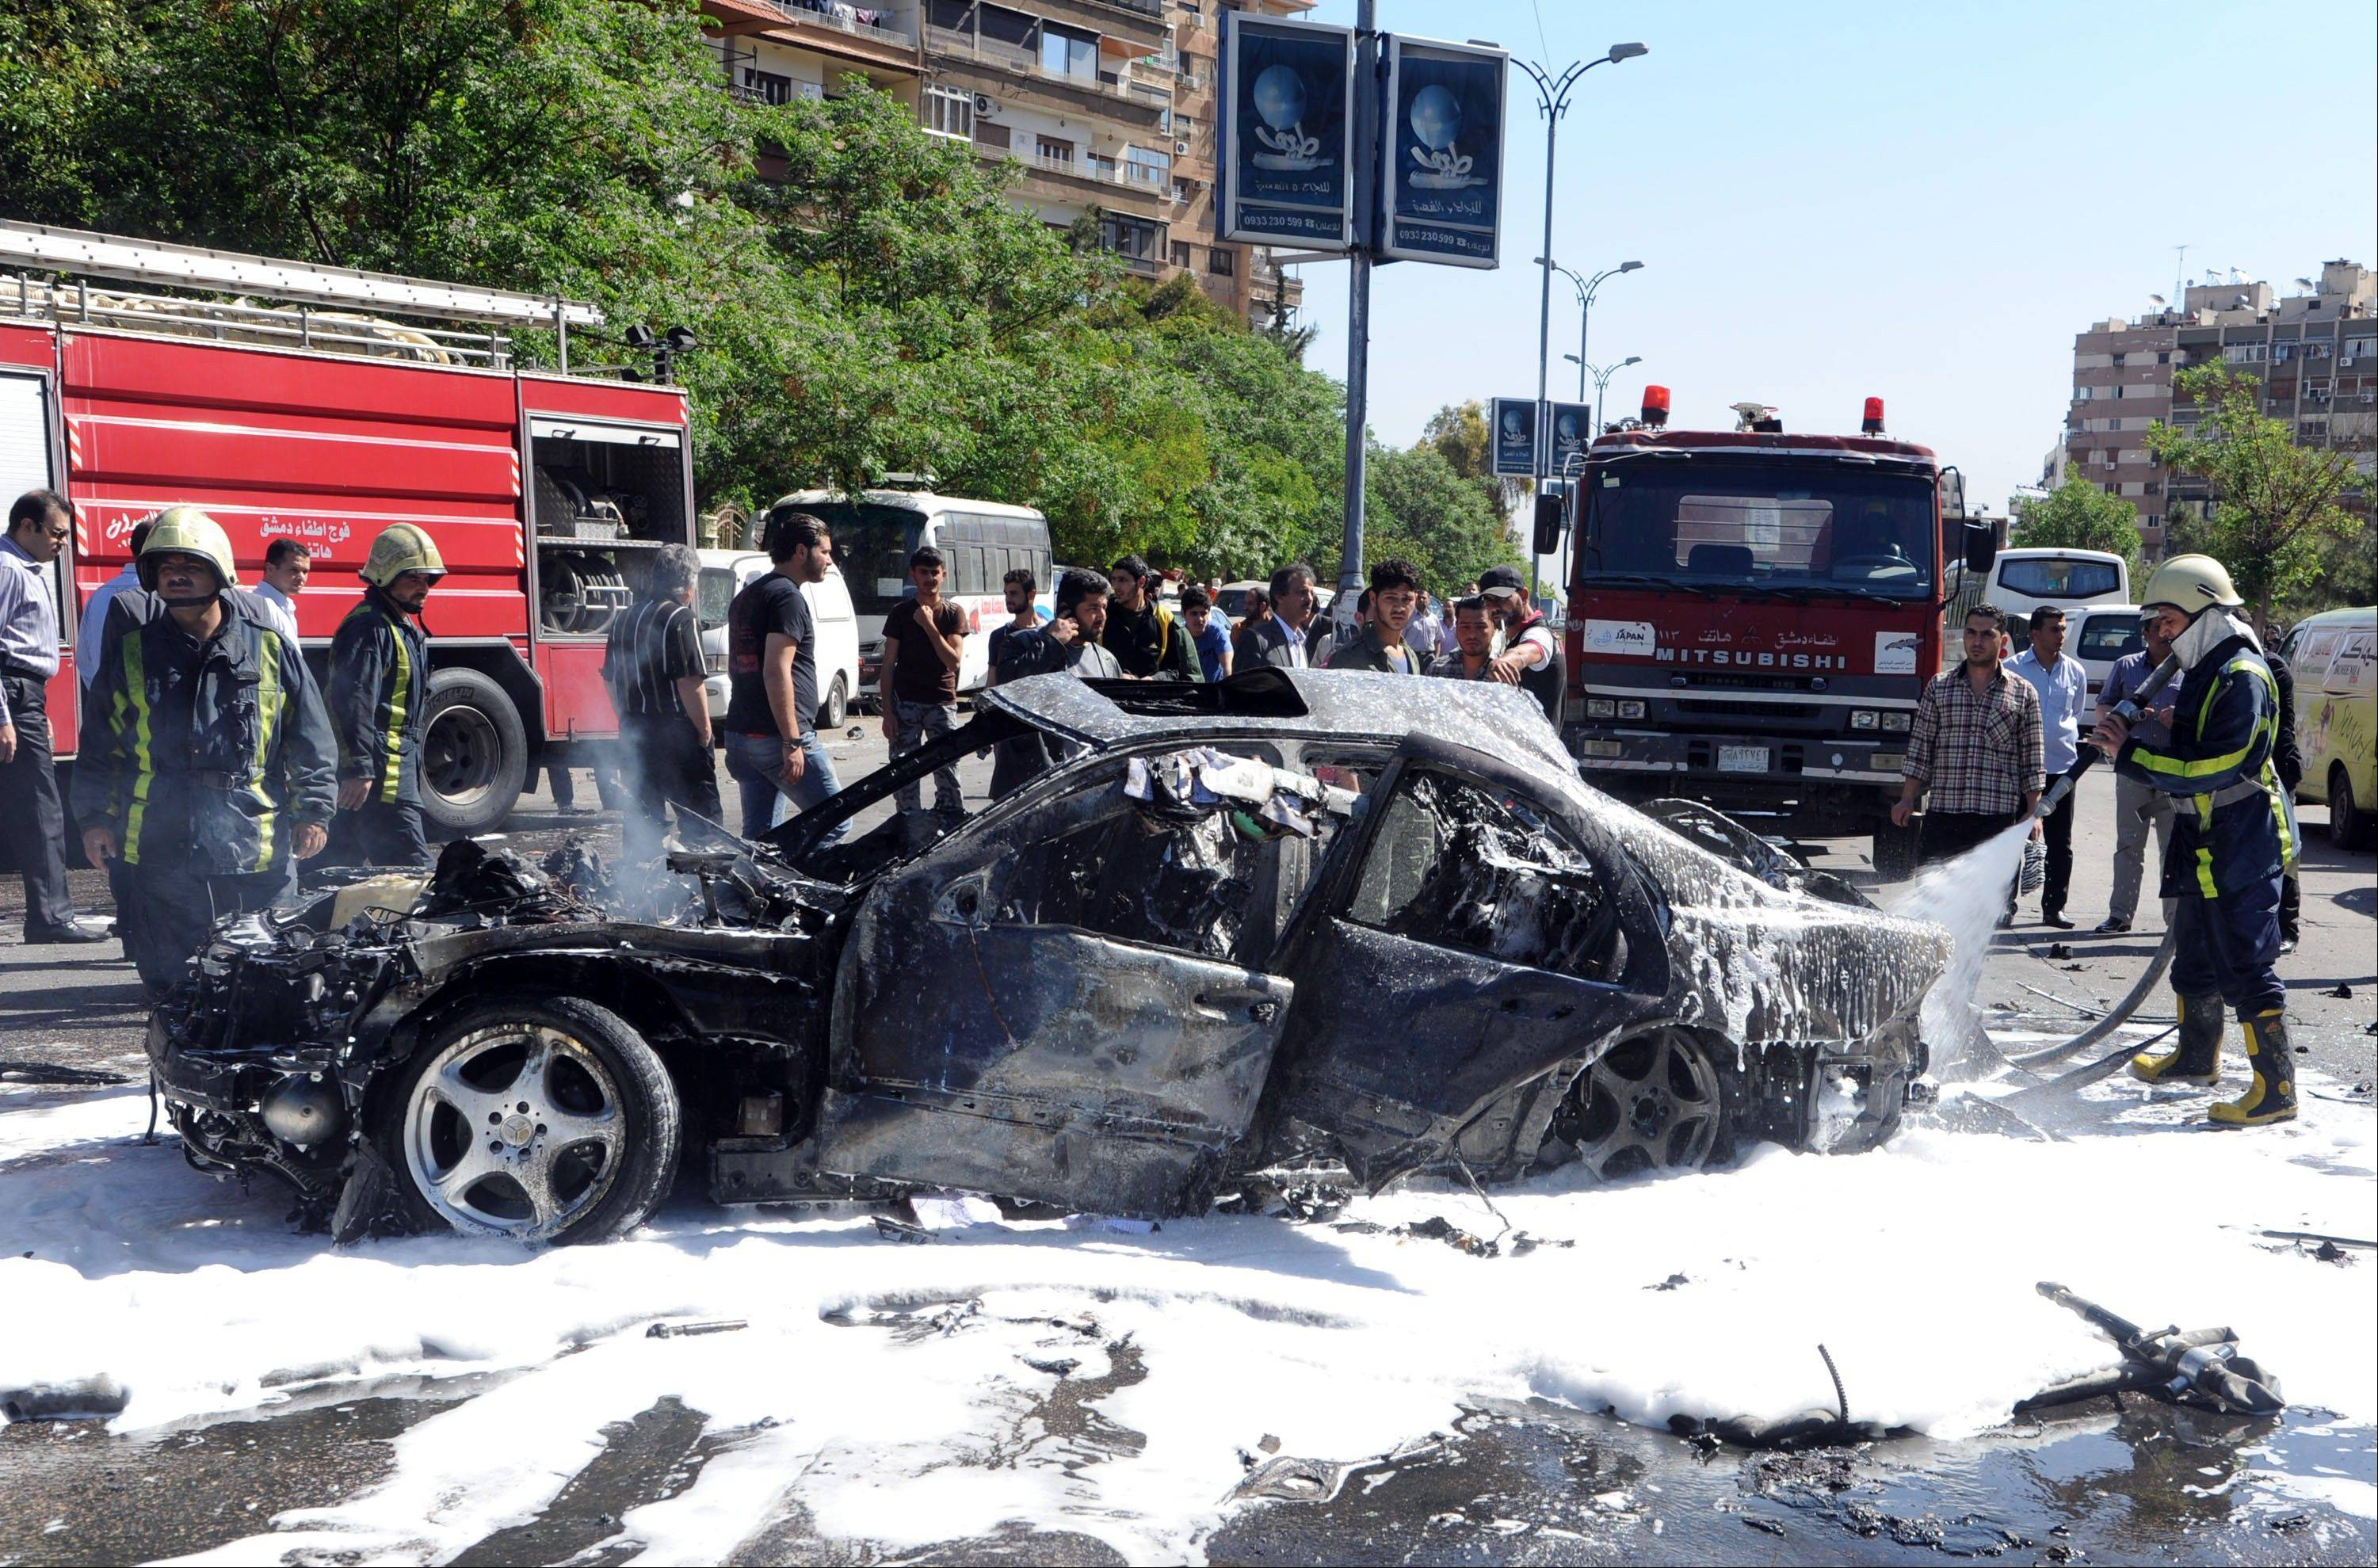 Syrian firefighters extinguish burning cars after a car bomb exploded in the capital's western neighborhood of Mazzeh, in Damascus, Syria, Monday. State-run Syrian TV says the country's Prime Minister Wael al-Halqi has escaped an assassination attempt when a bomb went off near his convoy.